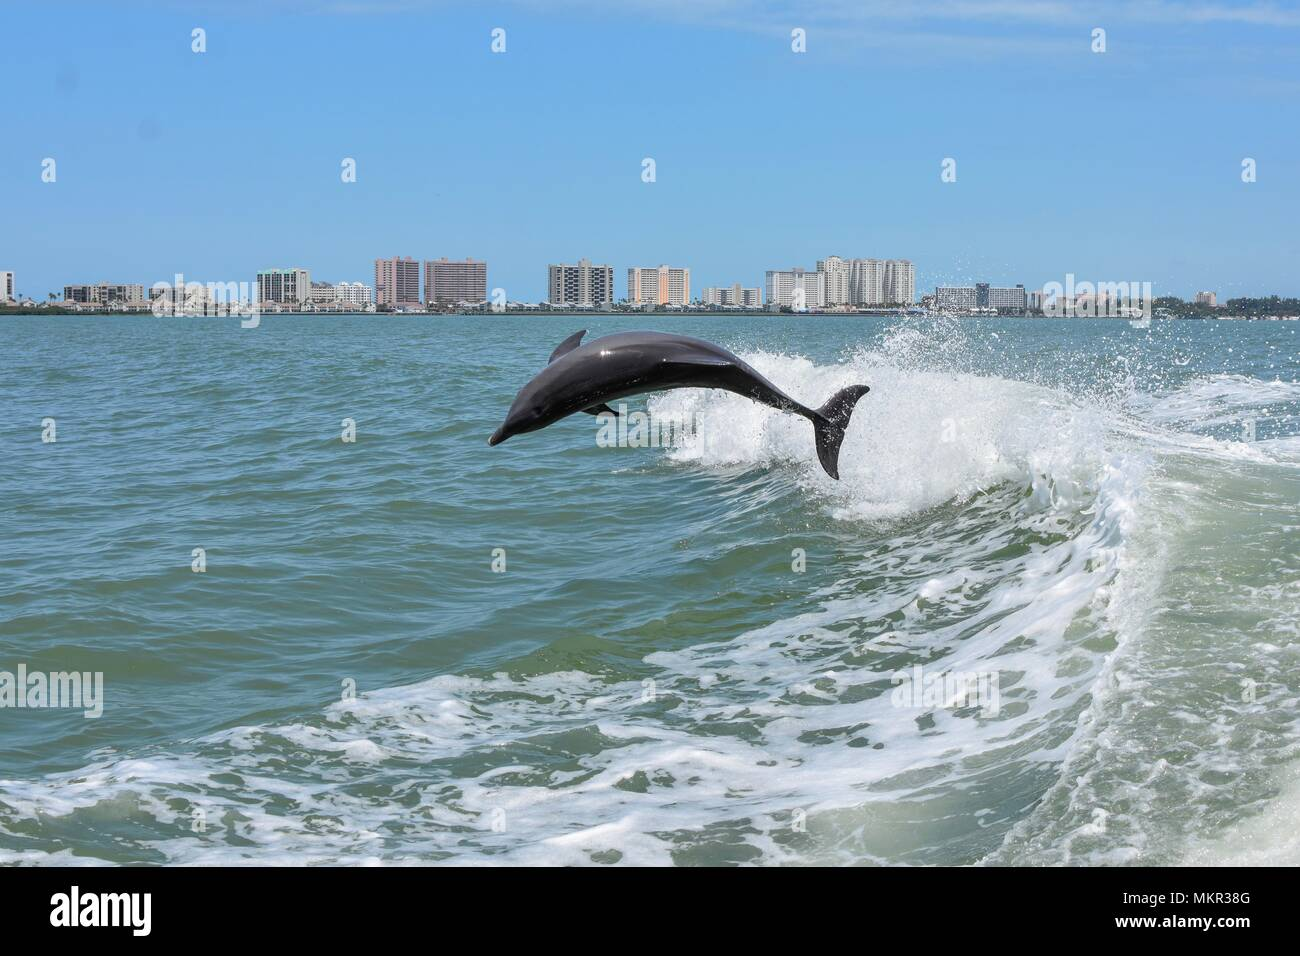 Dolphin watching at Clearwater, FL. - Stock Image